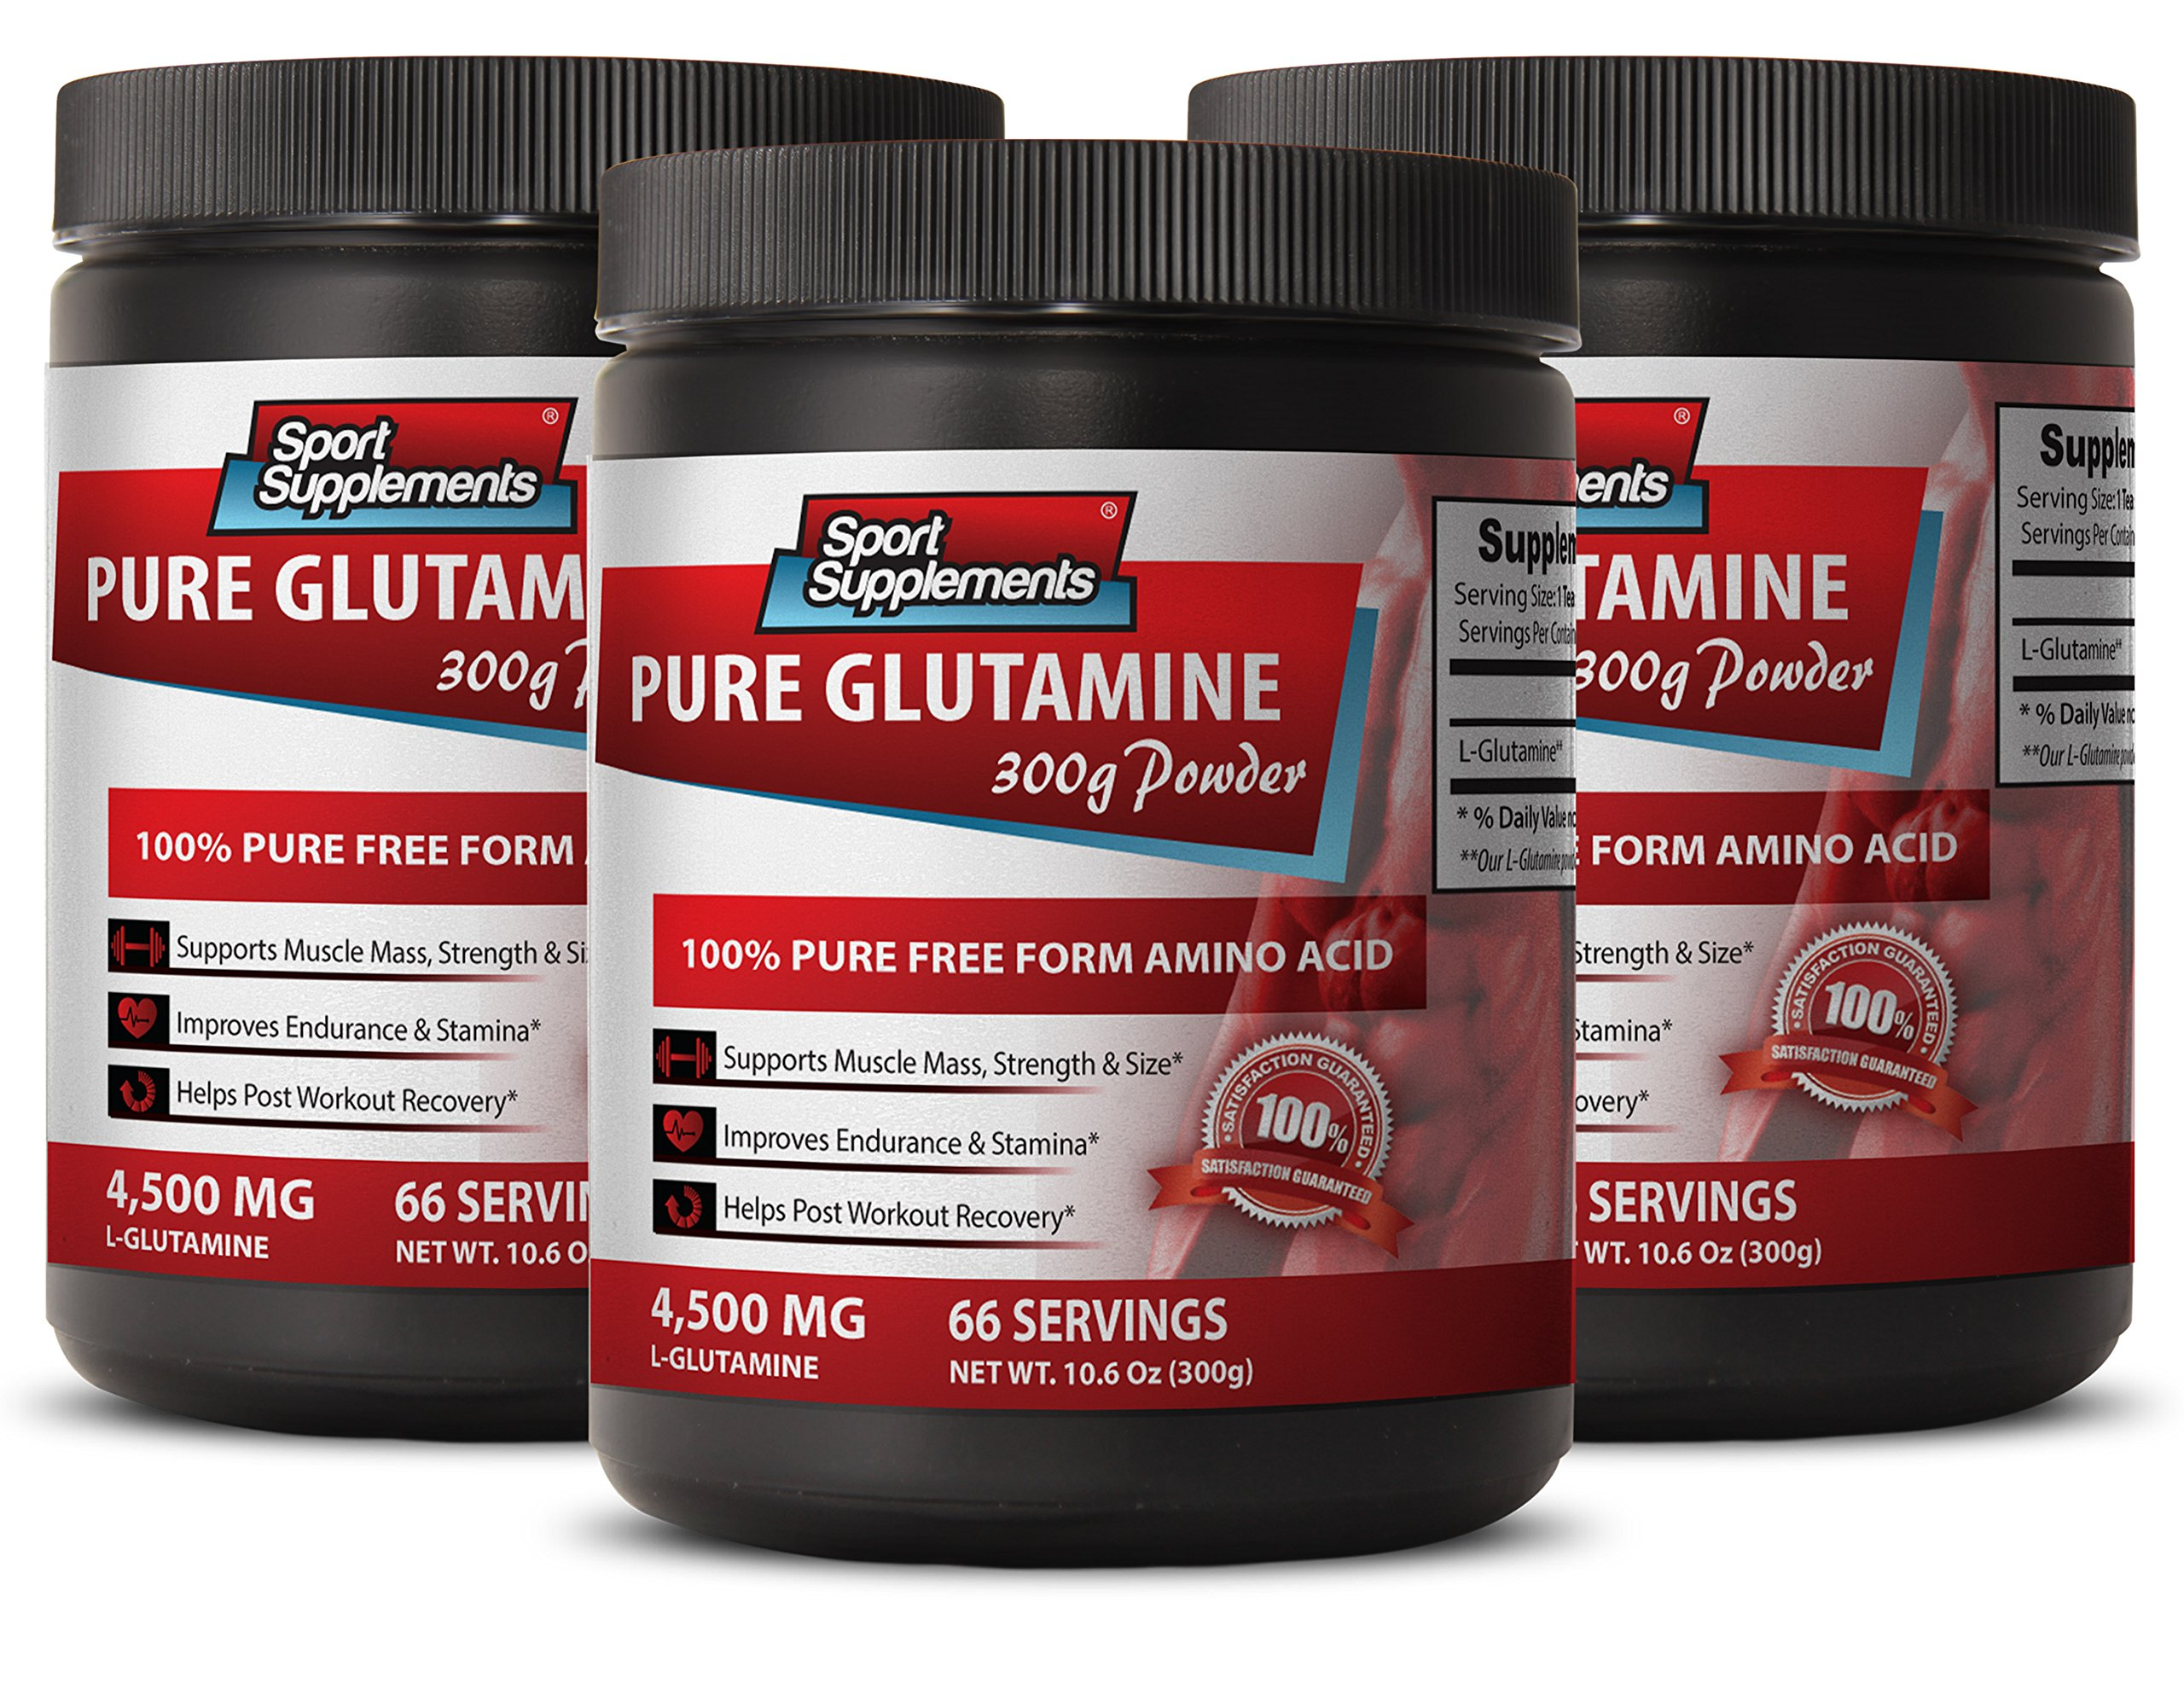 L glutamine tablets - L Glutamine 300 G Powder - Promotes muscle growth (6 Bottles)